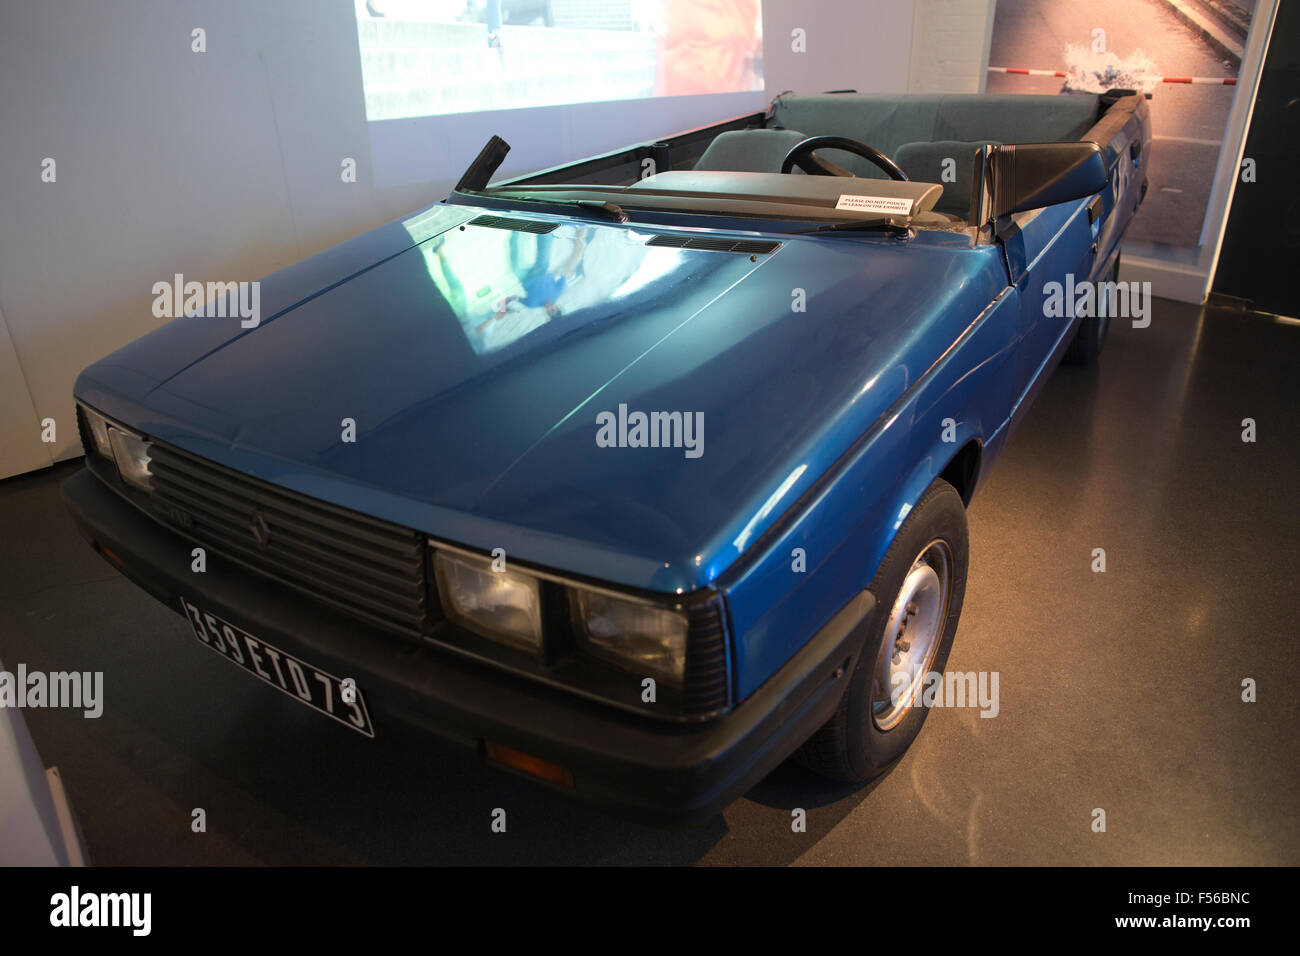 renault 11 txe car used in james bond 39 view to a kill 39 1985 film stock photo 89266056 alamy. Black Bedroom Furniture Sets. Home Design Ideas